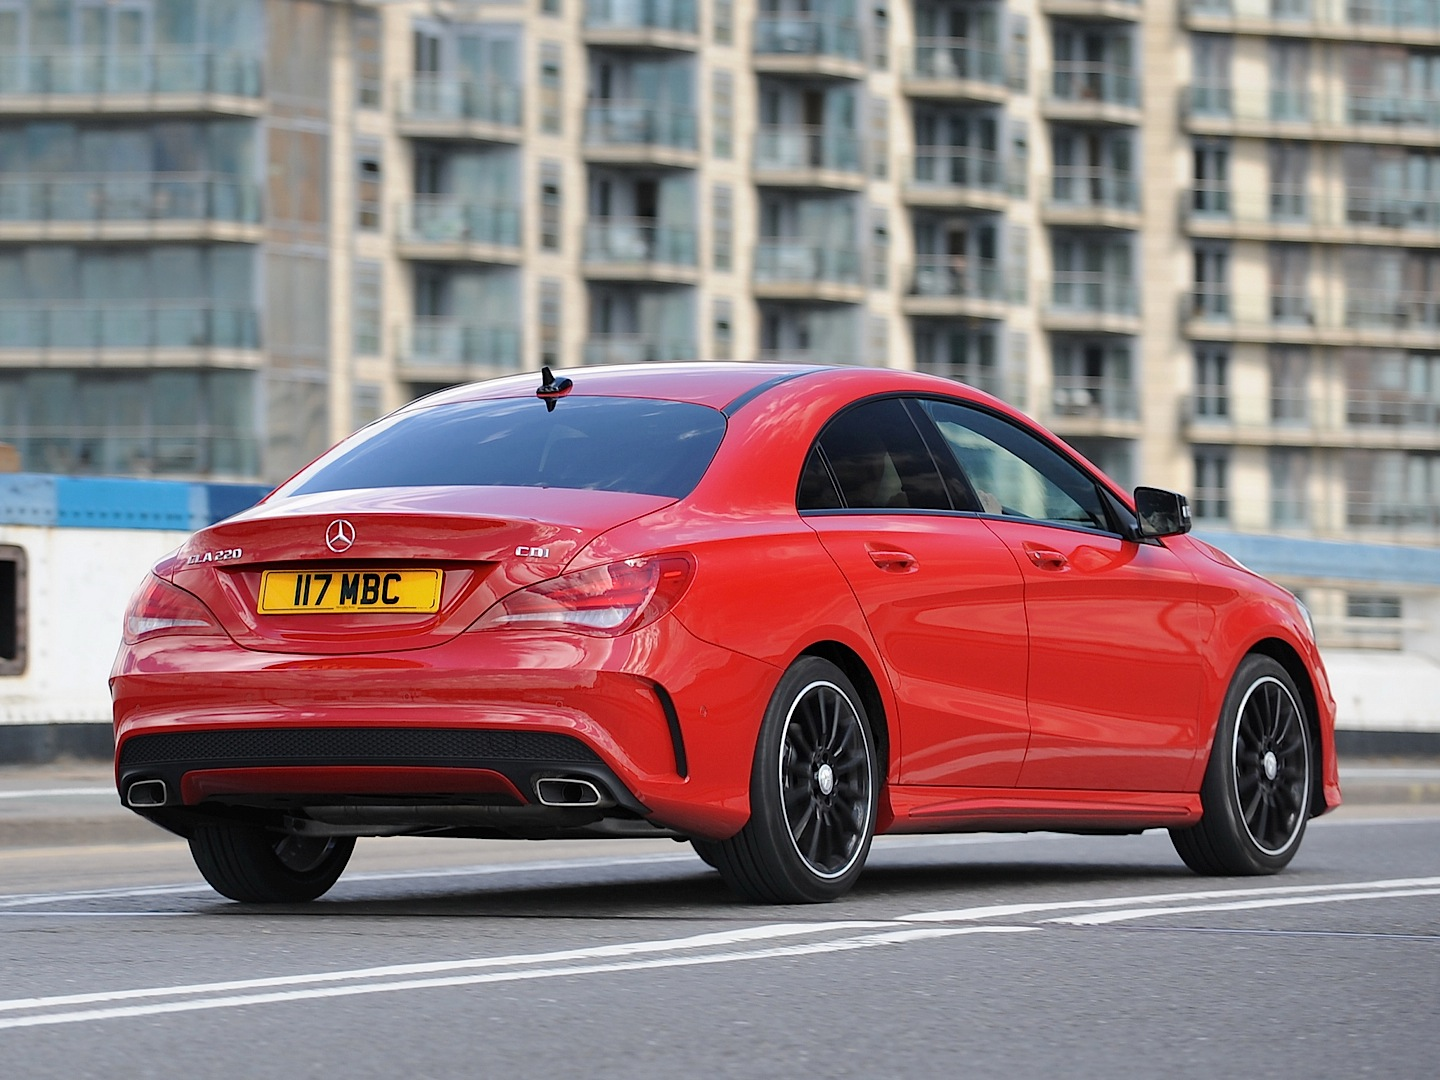 Mercedes Benz Cla Cdi Gets Reviewed By Car Photo Gallery on Bmw 5 Series Touring